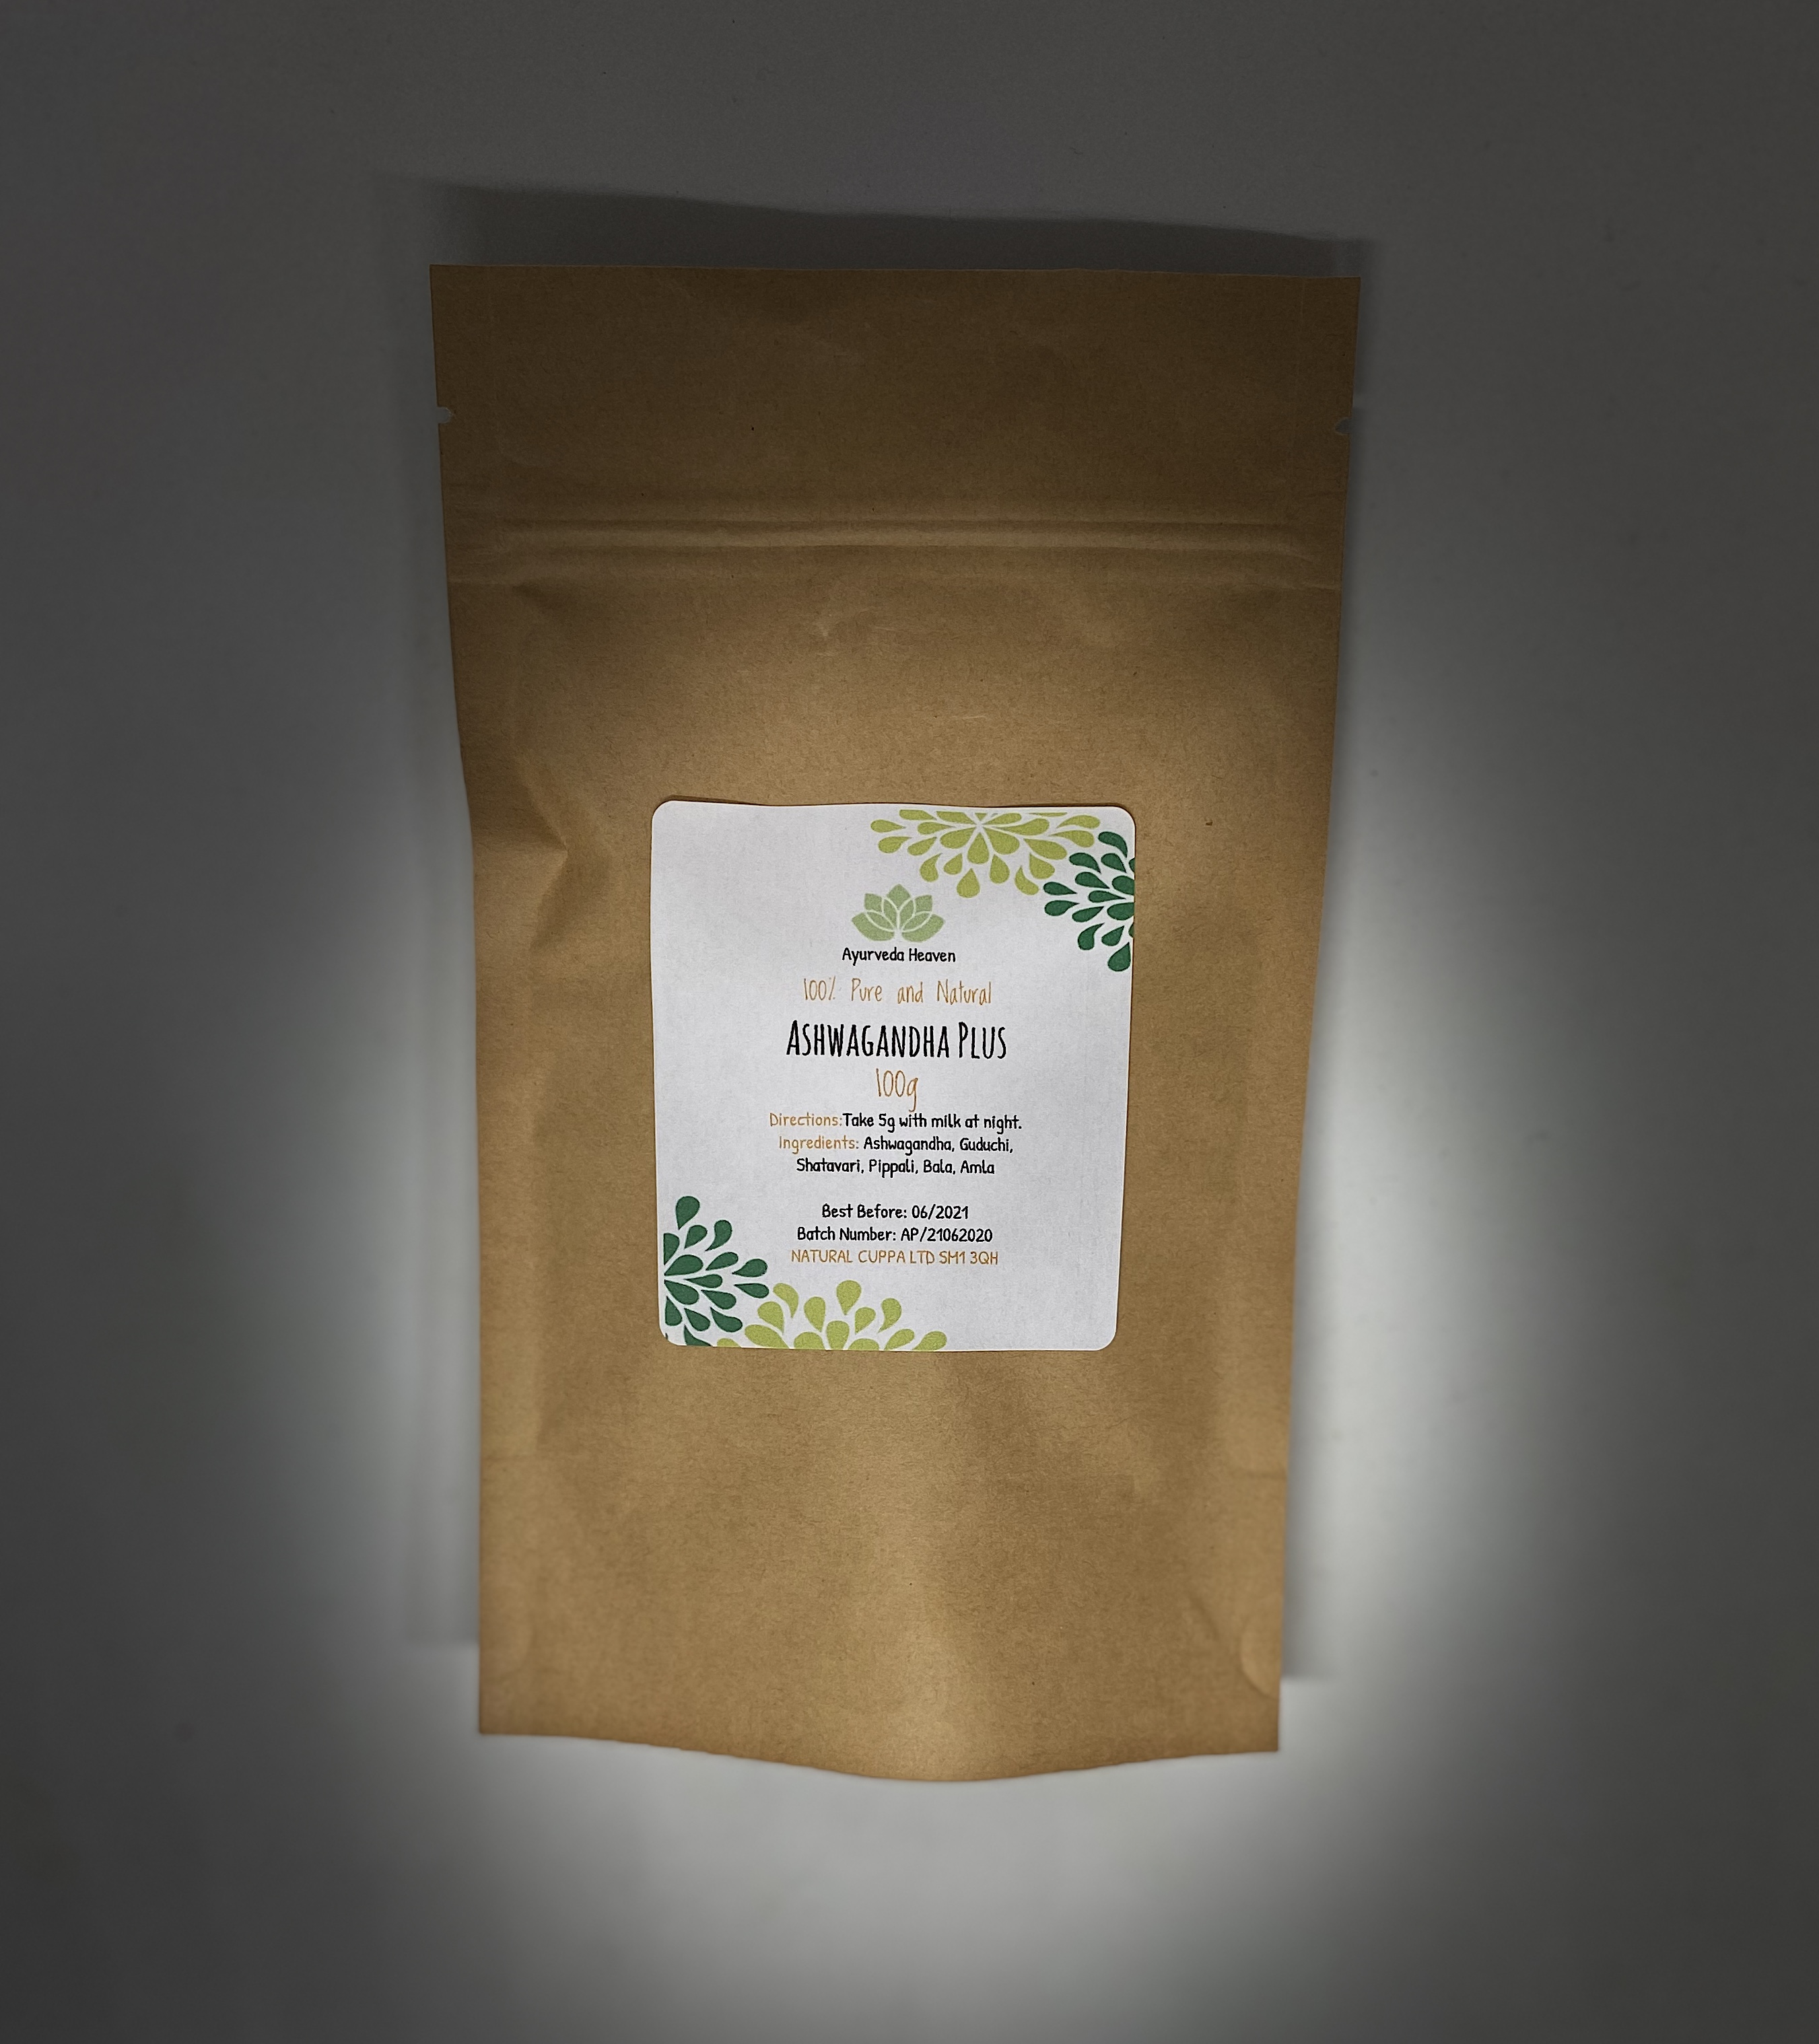 Ashwagandha Plus Powder